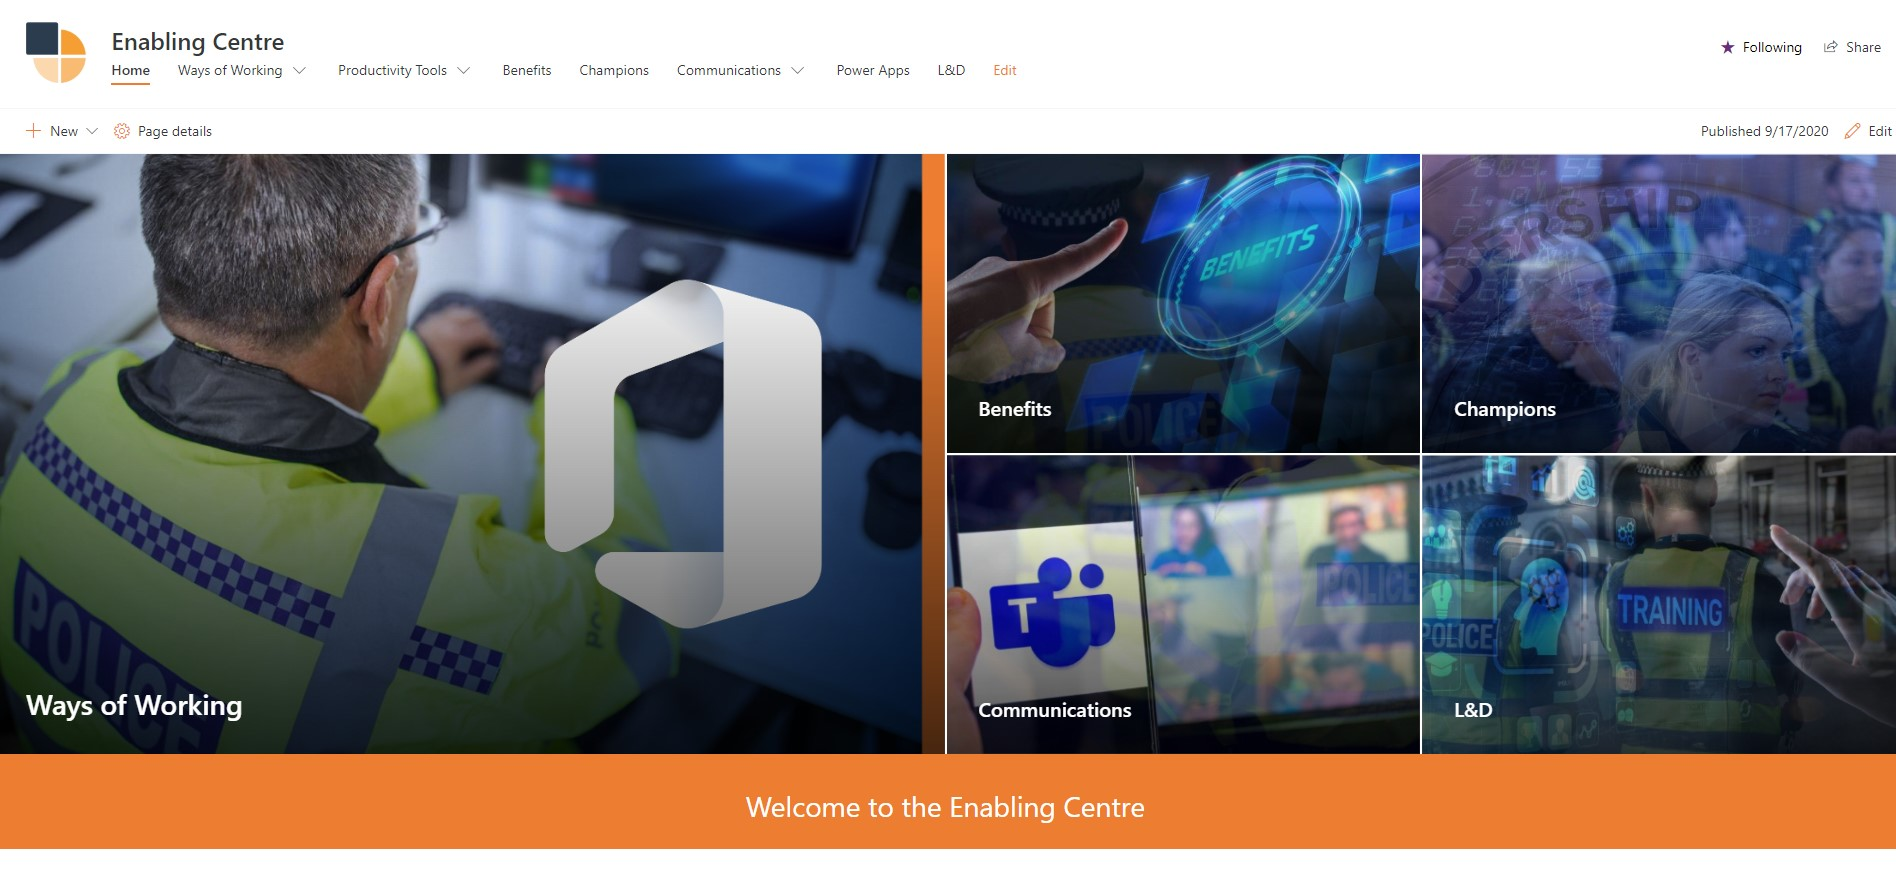 Screenshot of the Enabling Centre